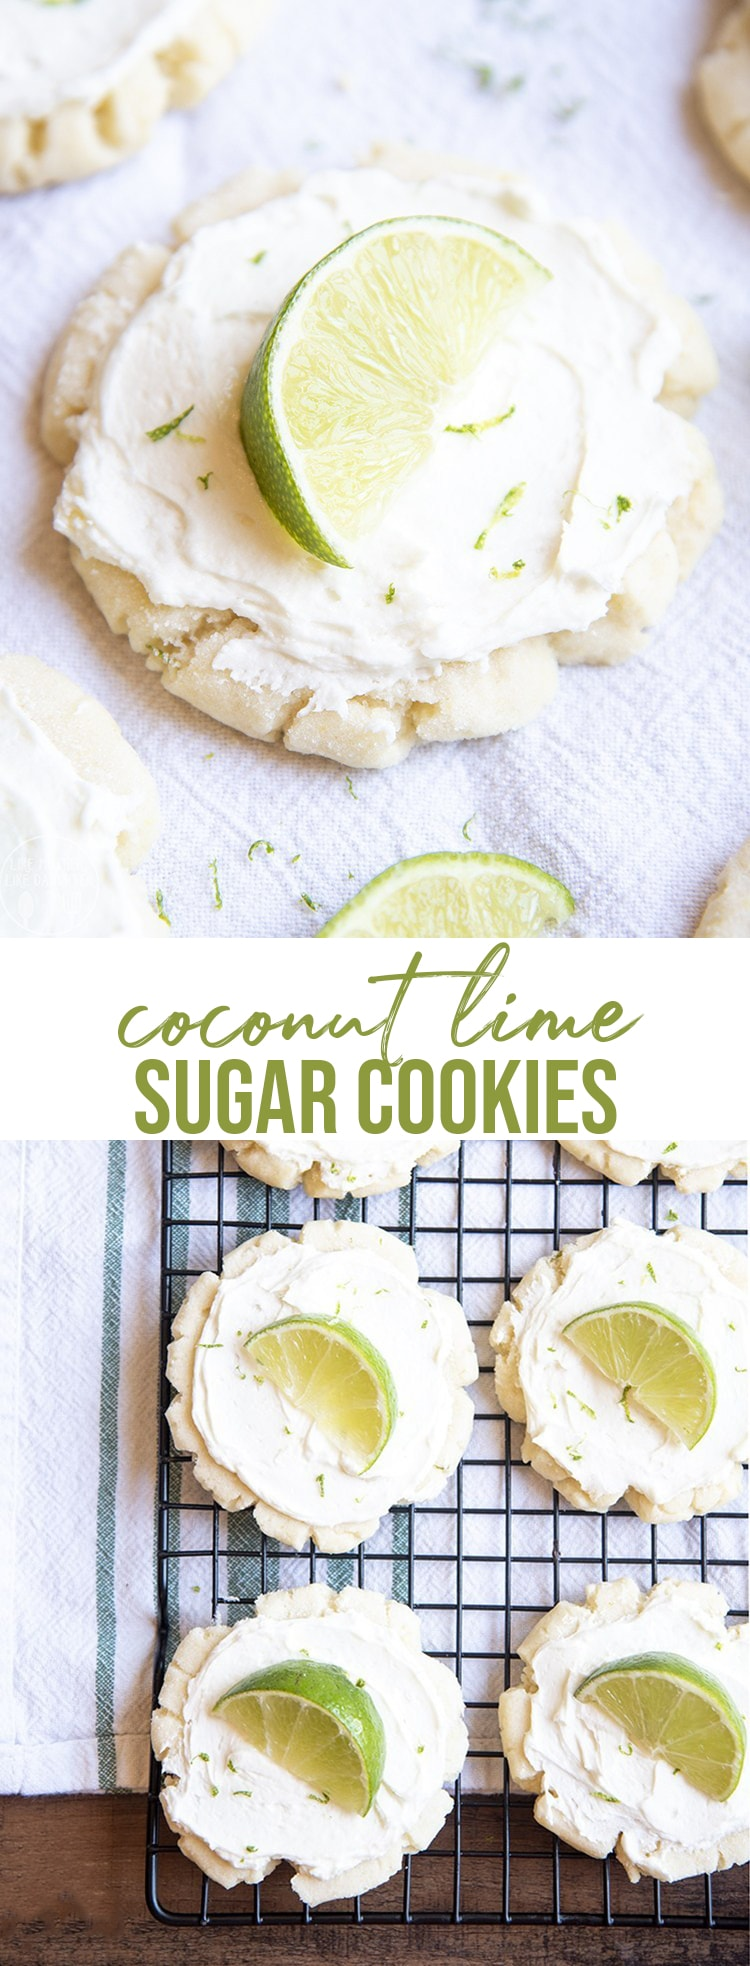 These coconut lime sugar cookies are the best sugar cookies with a refreshing twist. With a sweet sugar cookie, topped with a creamy coconut frosting, and fresh lime to squeeze on top, these cookies are to die for!